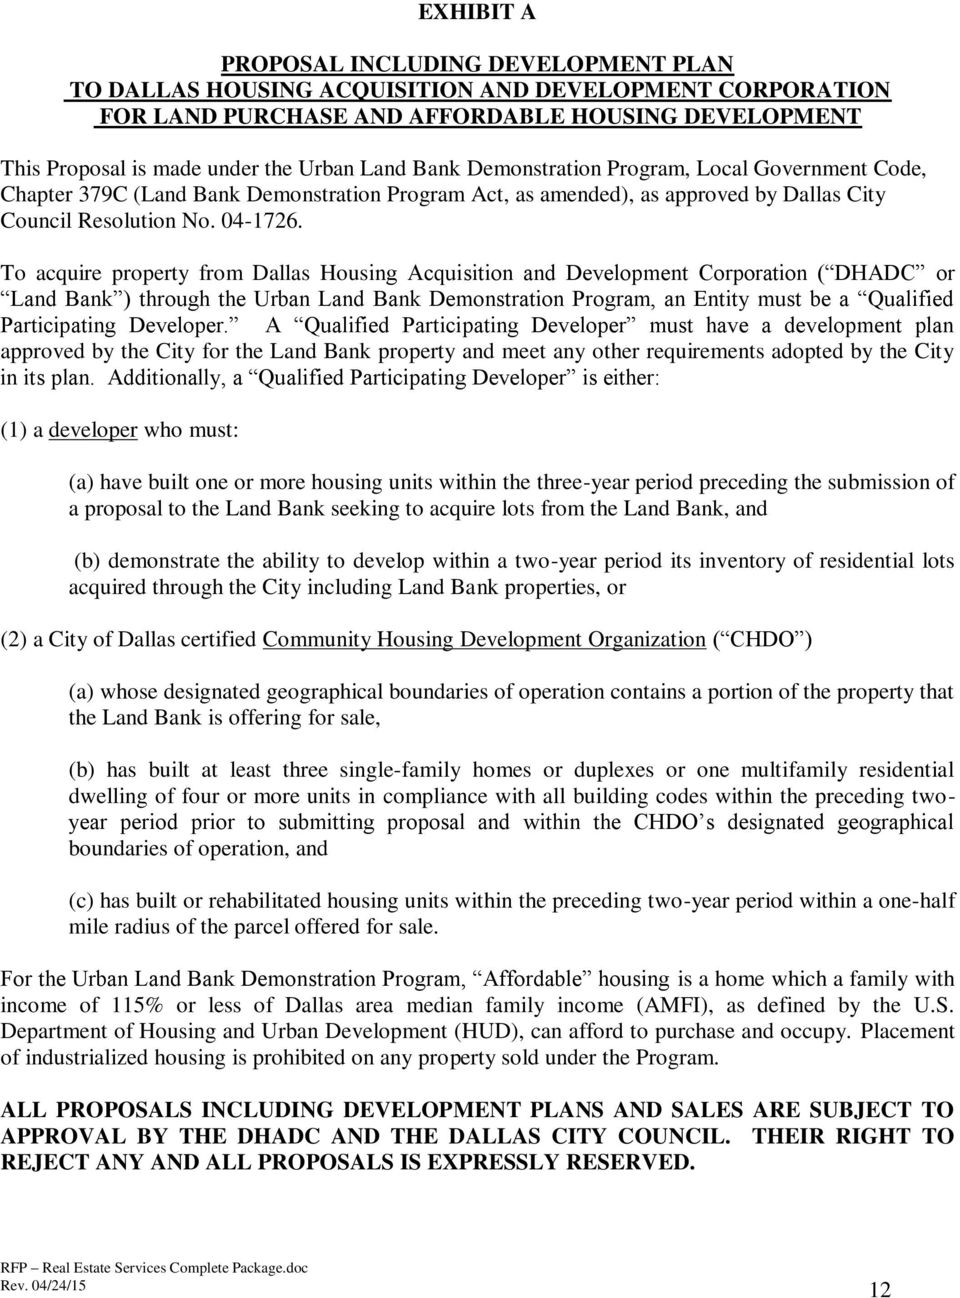 REQUEST FOR PROPOSALS ON BEHALF OF THE DALLAS HOUSING